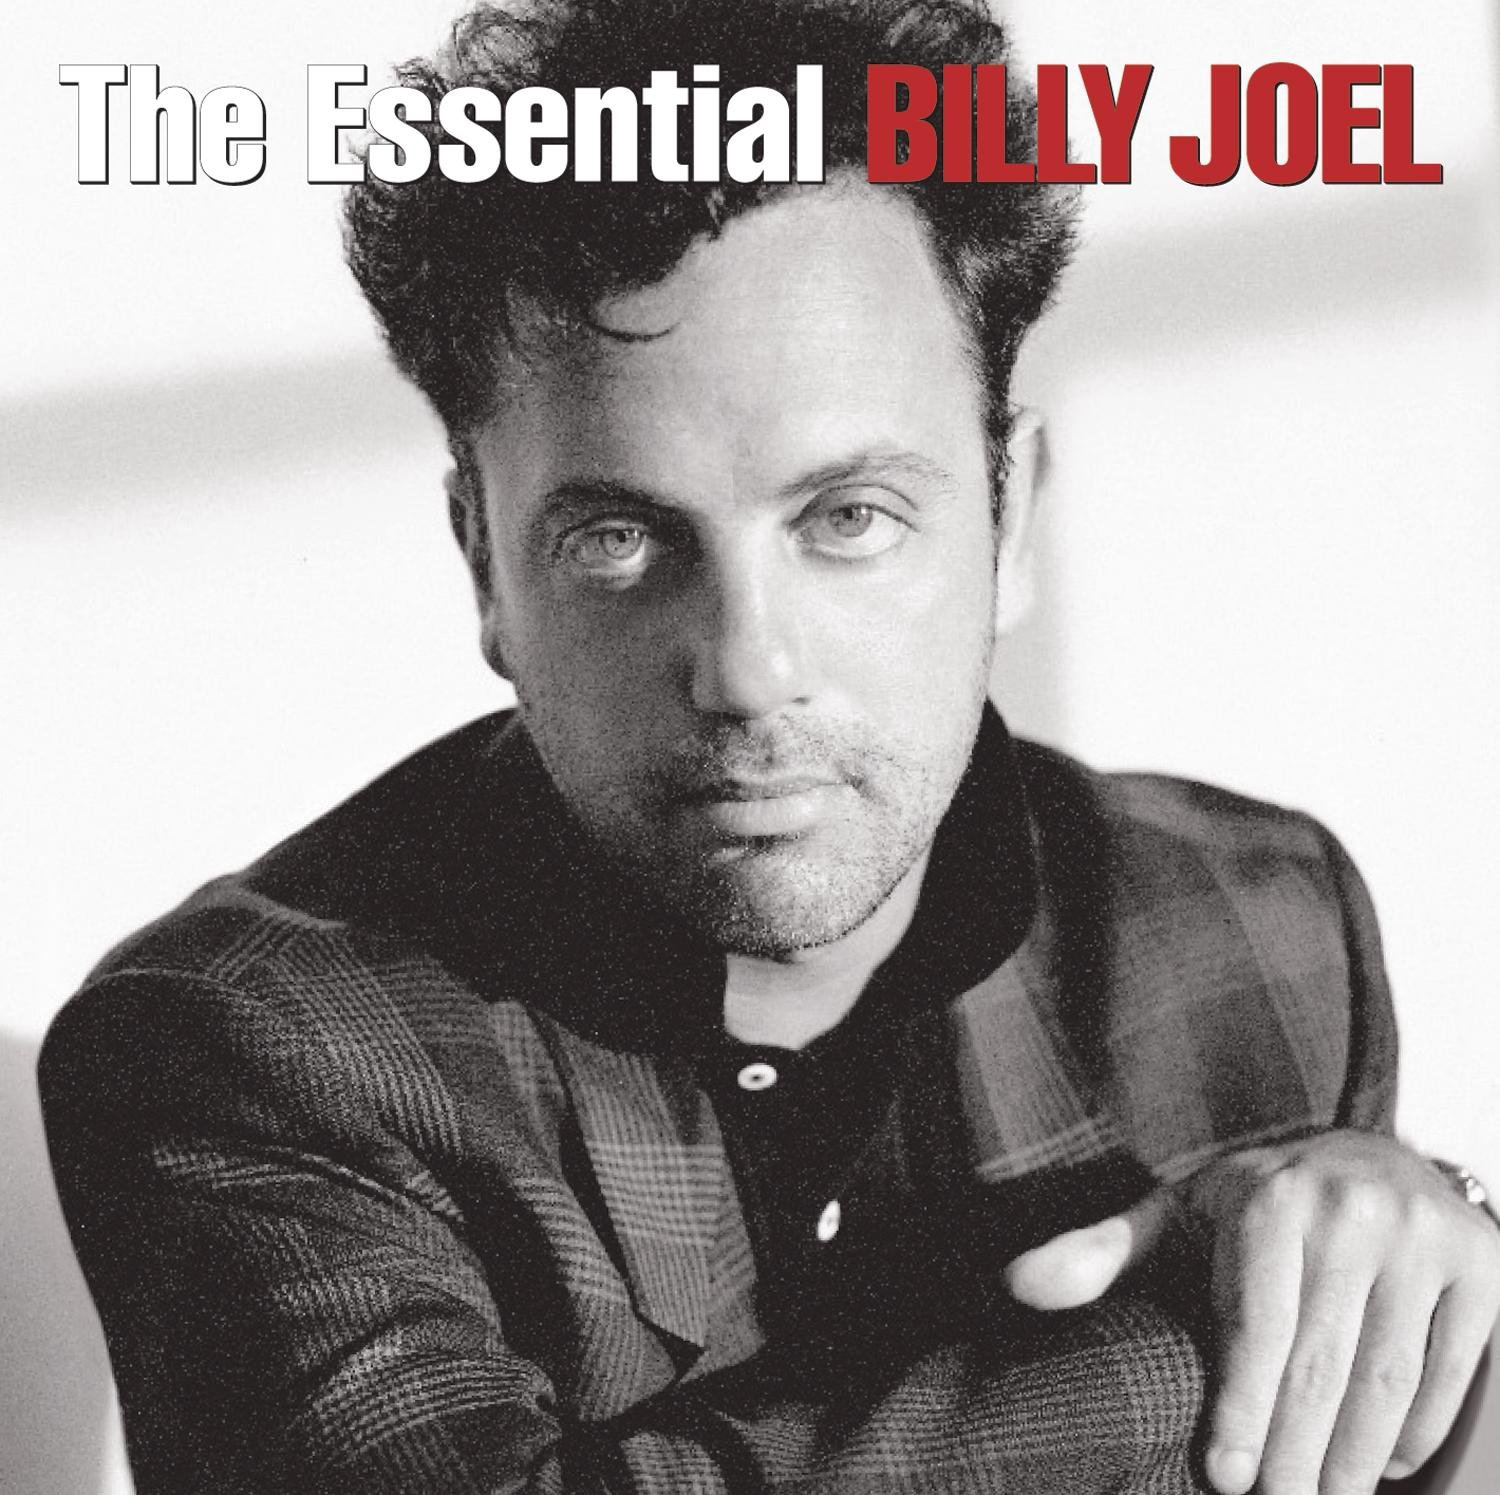 The Essential Billy Joel by Sony Music